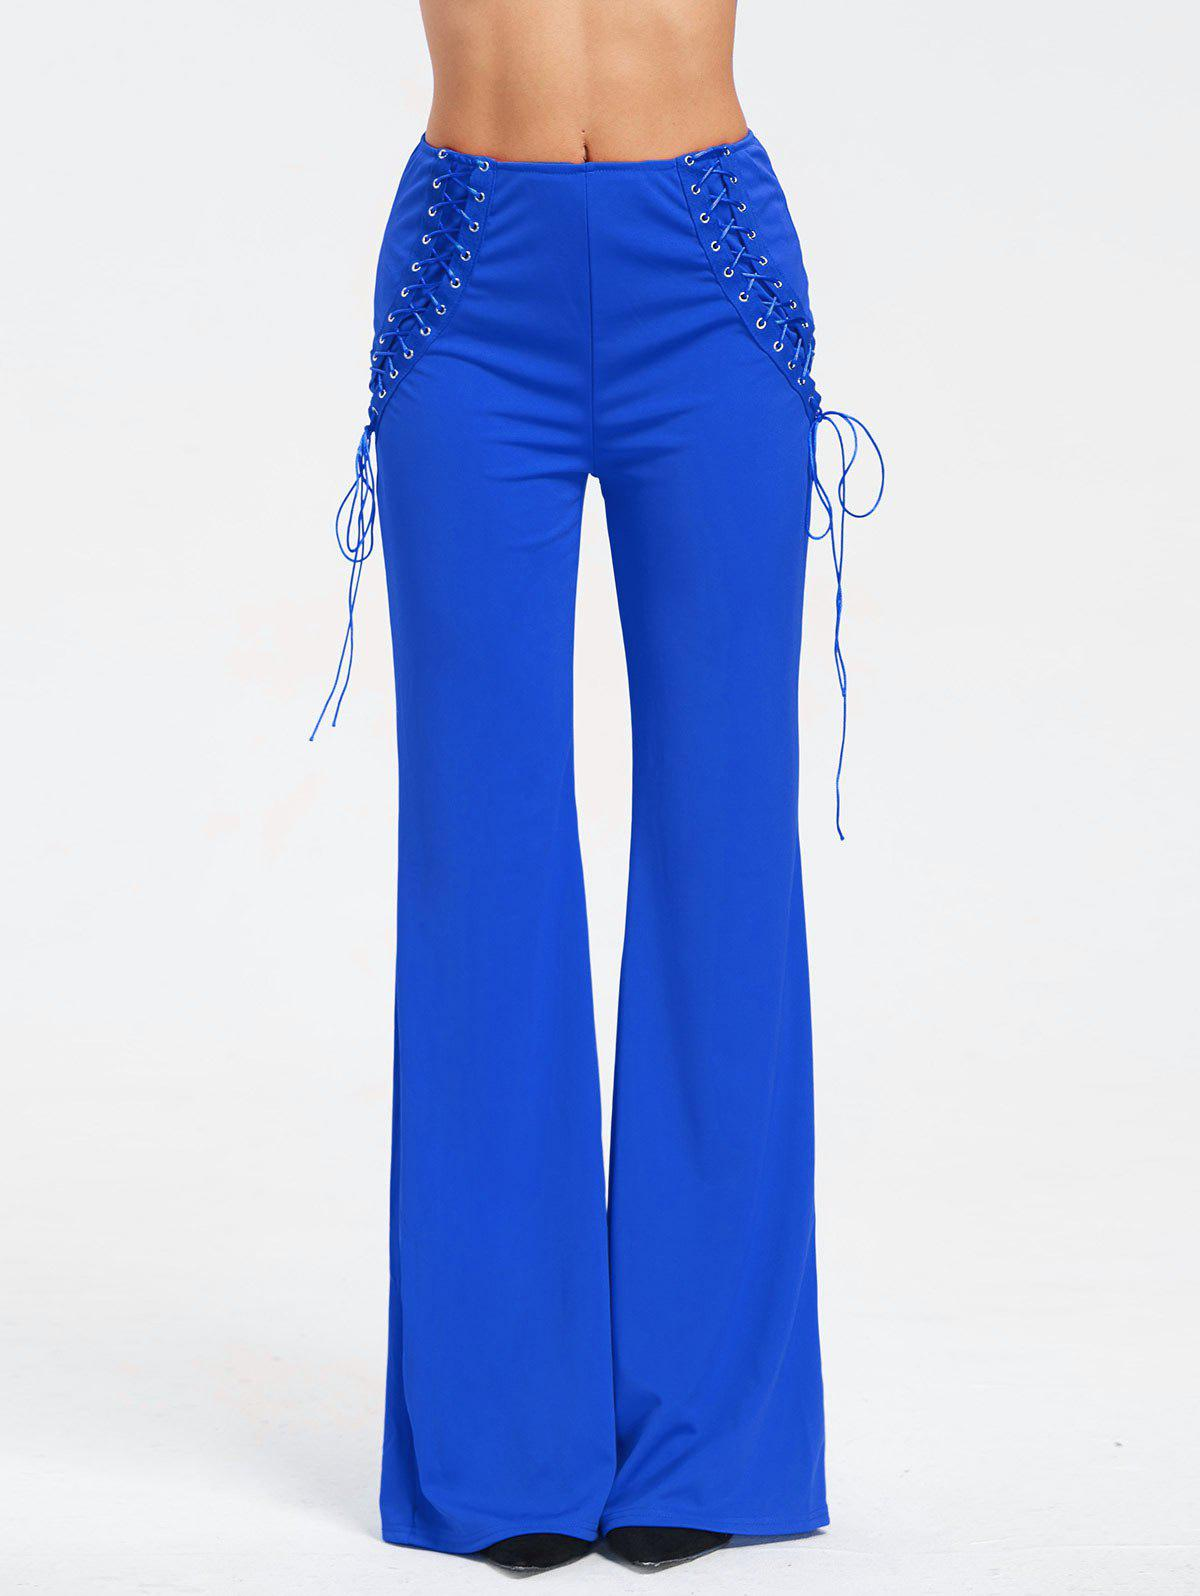 High Waist Criss Cross Lace Up Flare Pants - ROYAL S